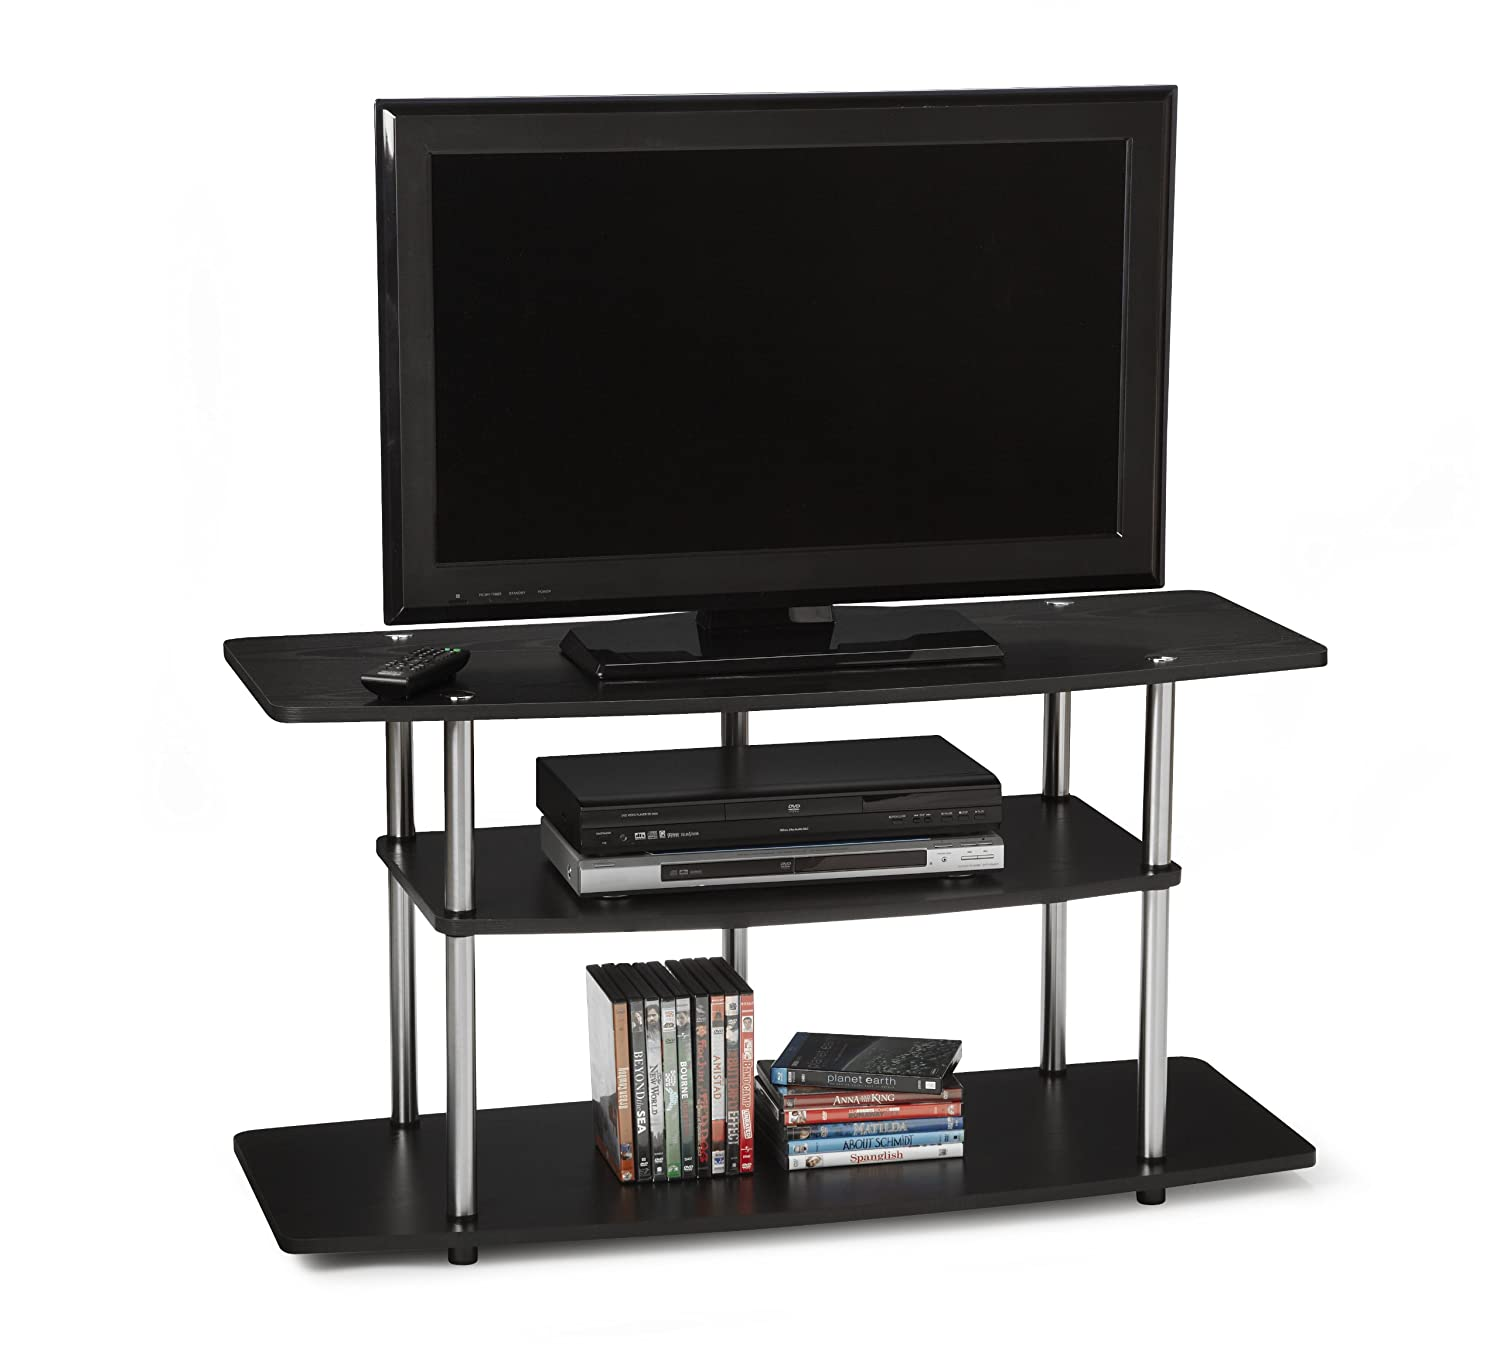 looking for a tv stand black friday 2013 slickdeals. Black Bedroom Furniture Sets. Home Design Ideas